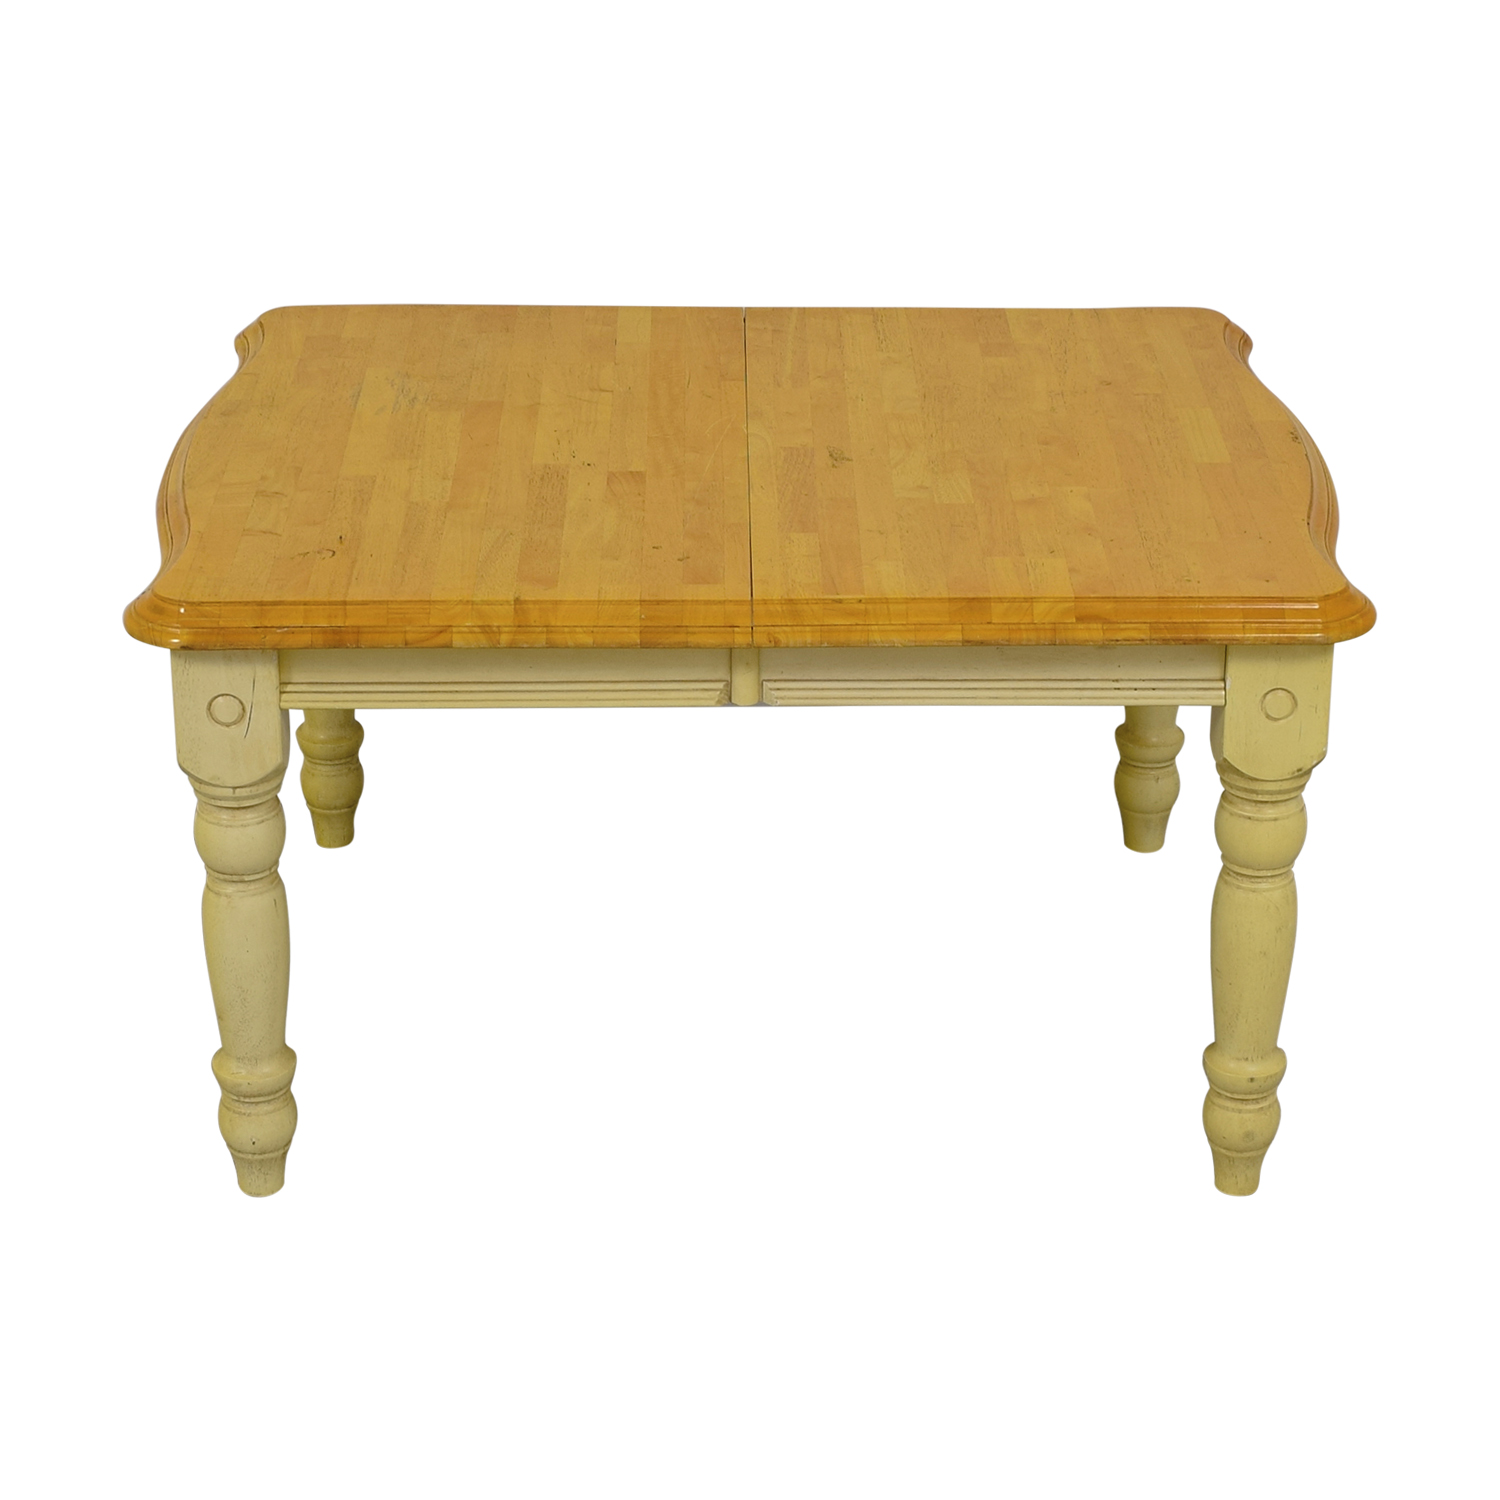 buy Limahsoon Limahsoon Cream Distressed Wood Top Dining Table online